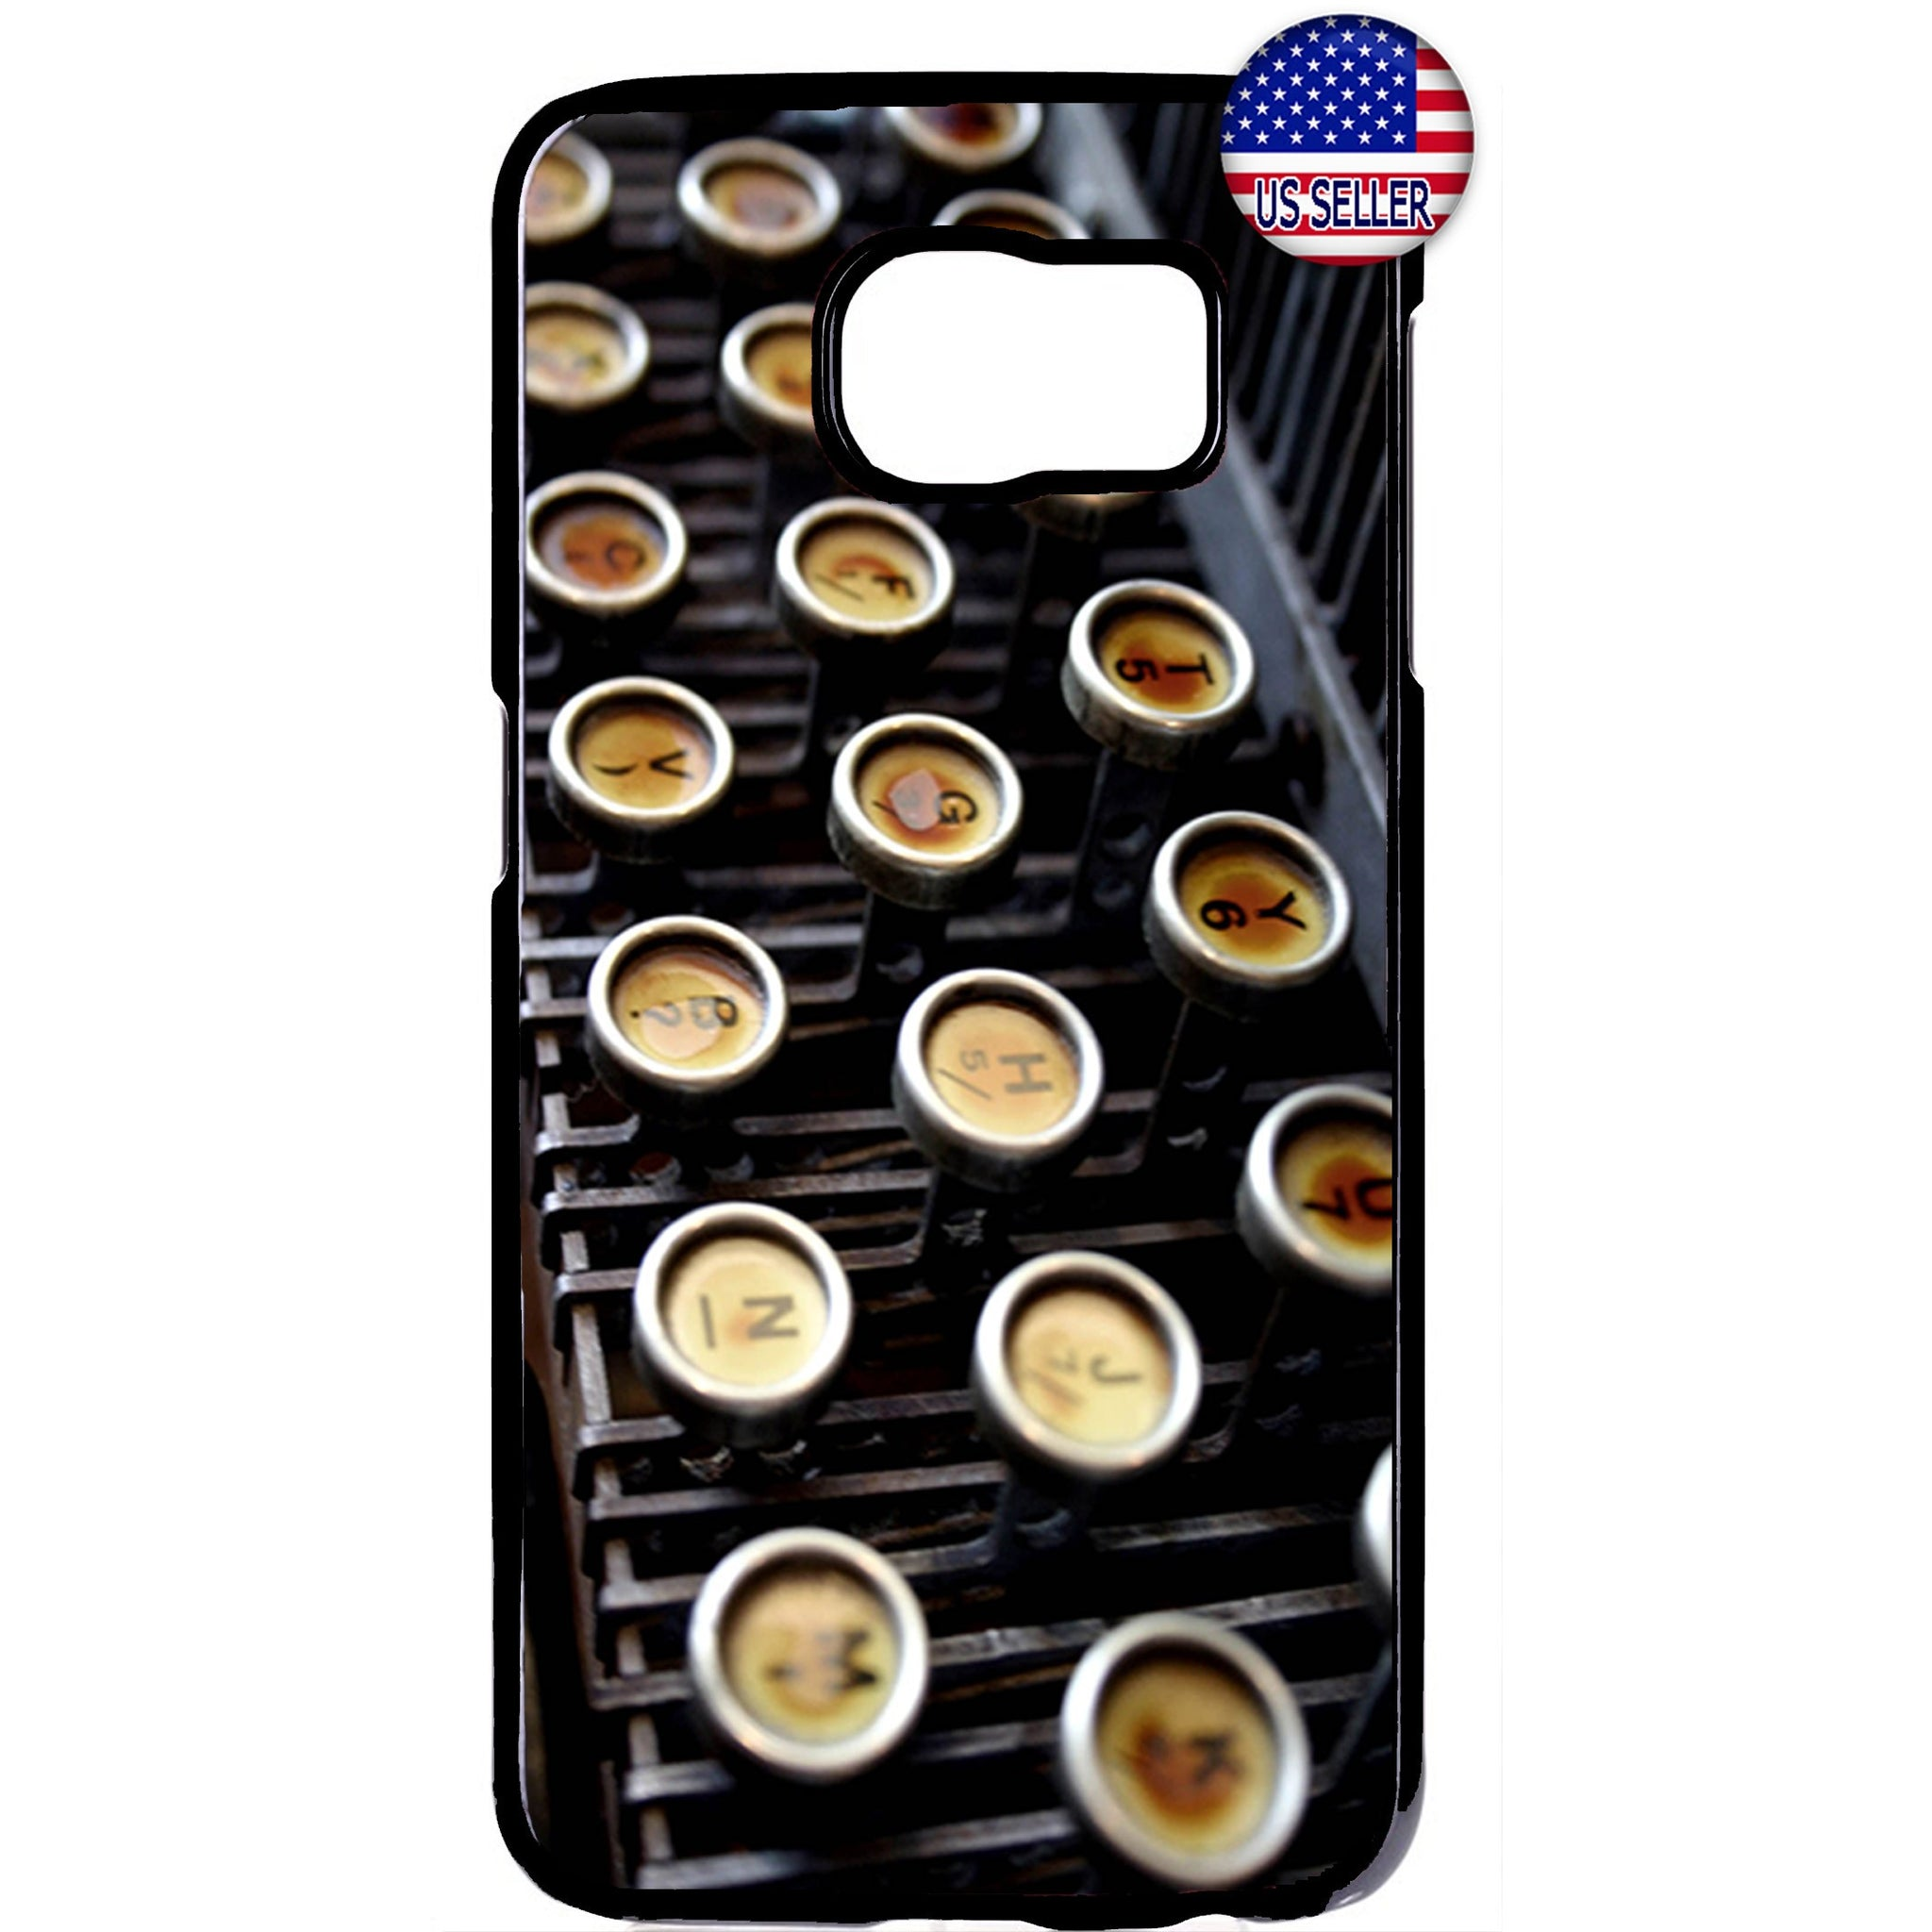 Vintage Retro Typewriter Rubber Case Cover For Samsung Galaxy Note